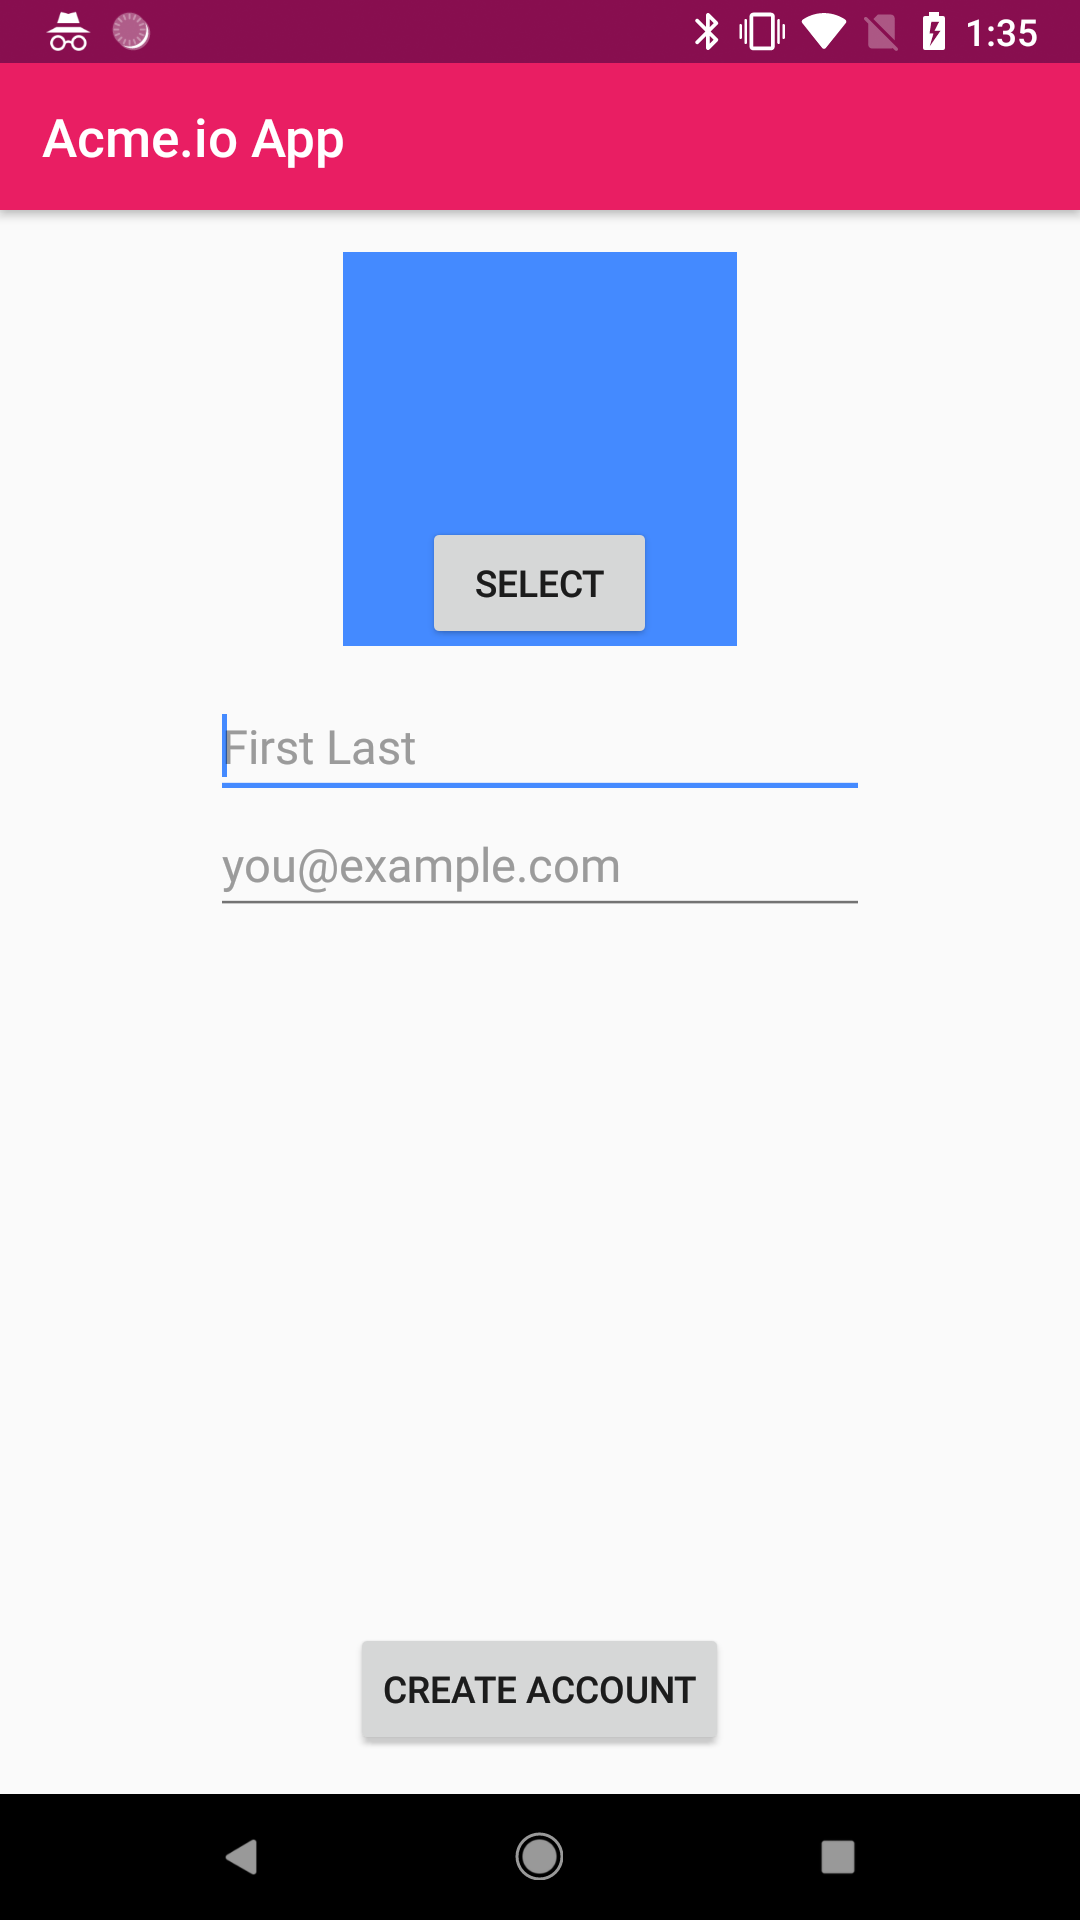 Filestack Docs | Form submission with the Android picker